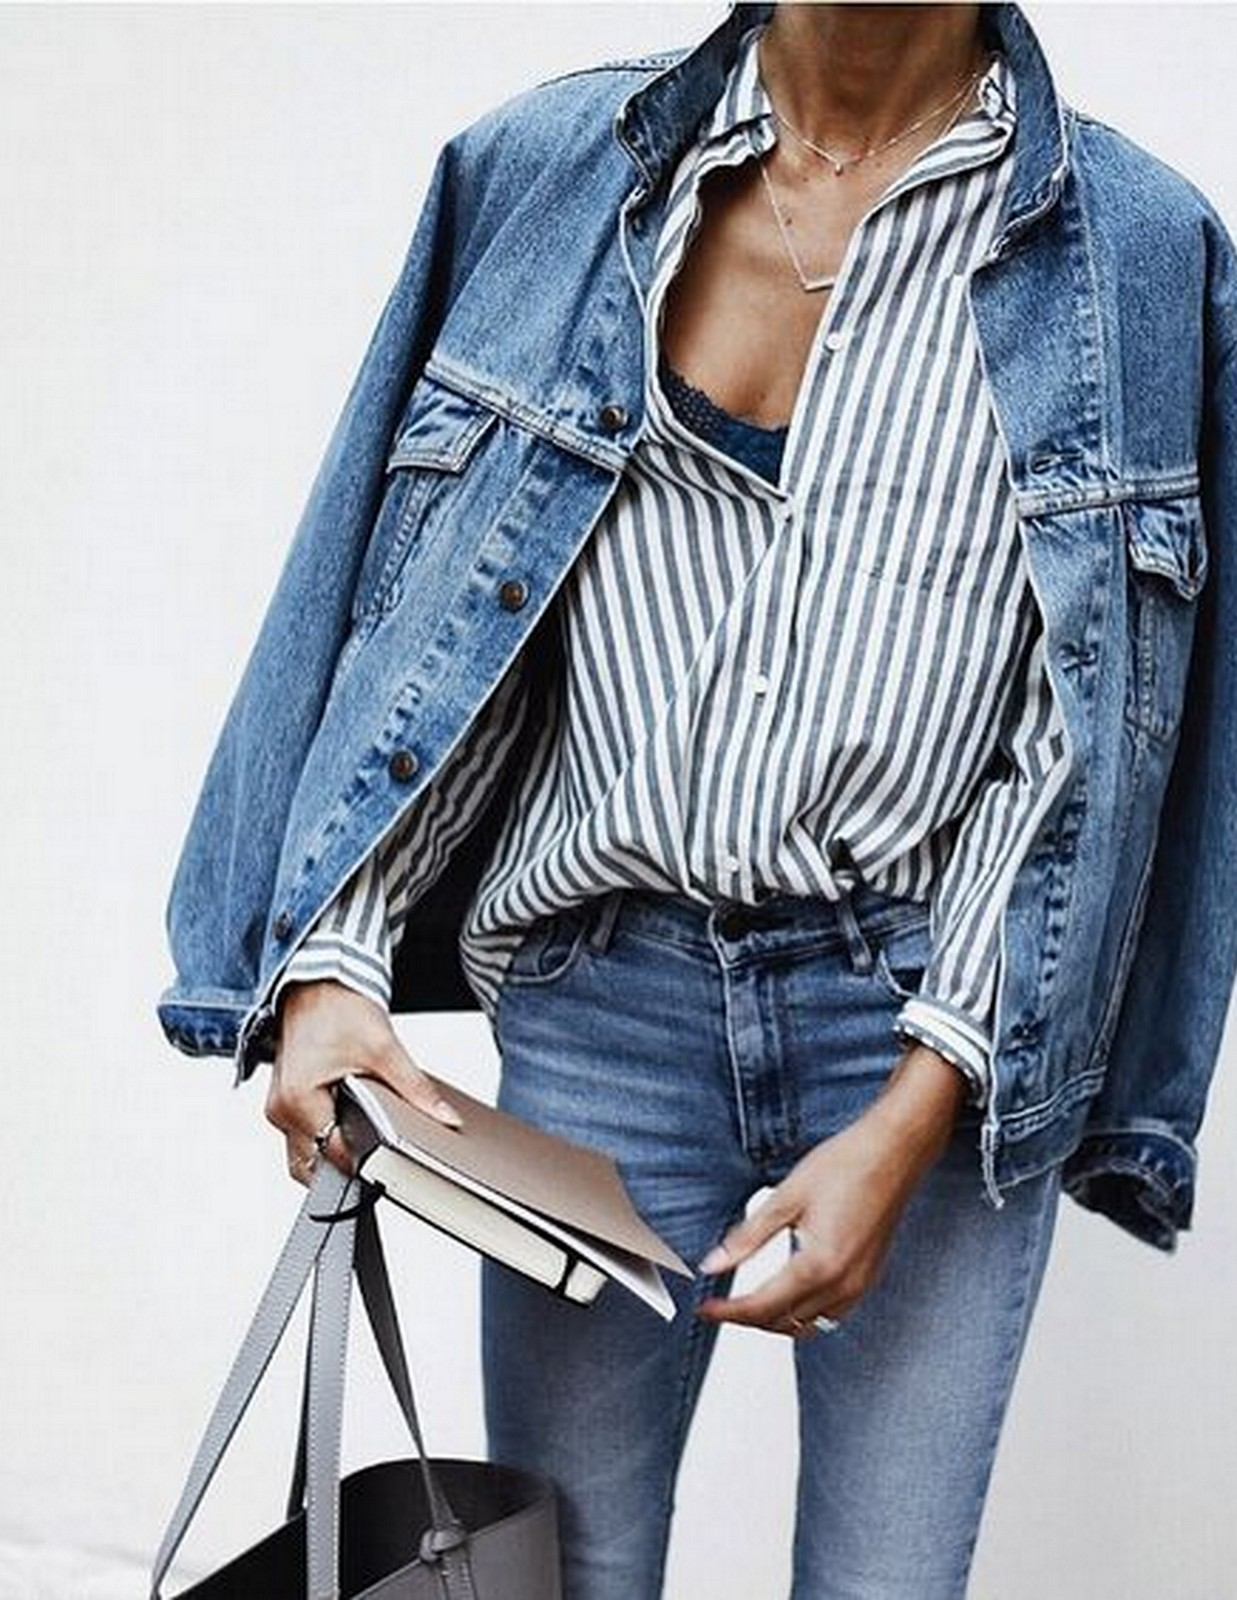 STRIPES + DENIM